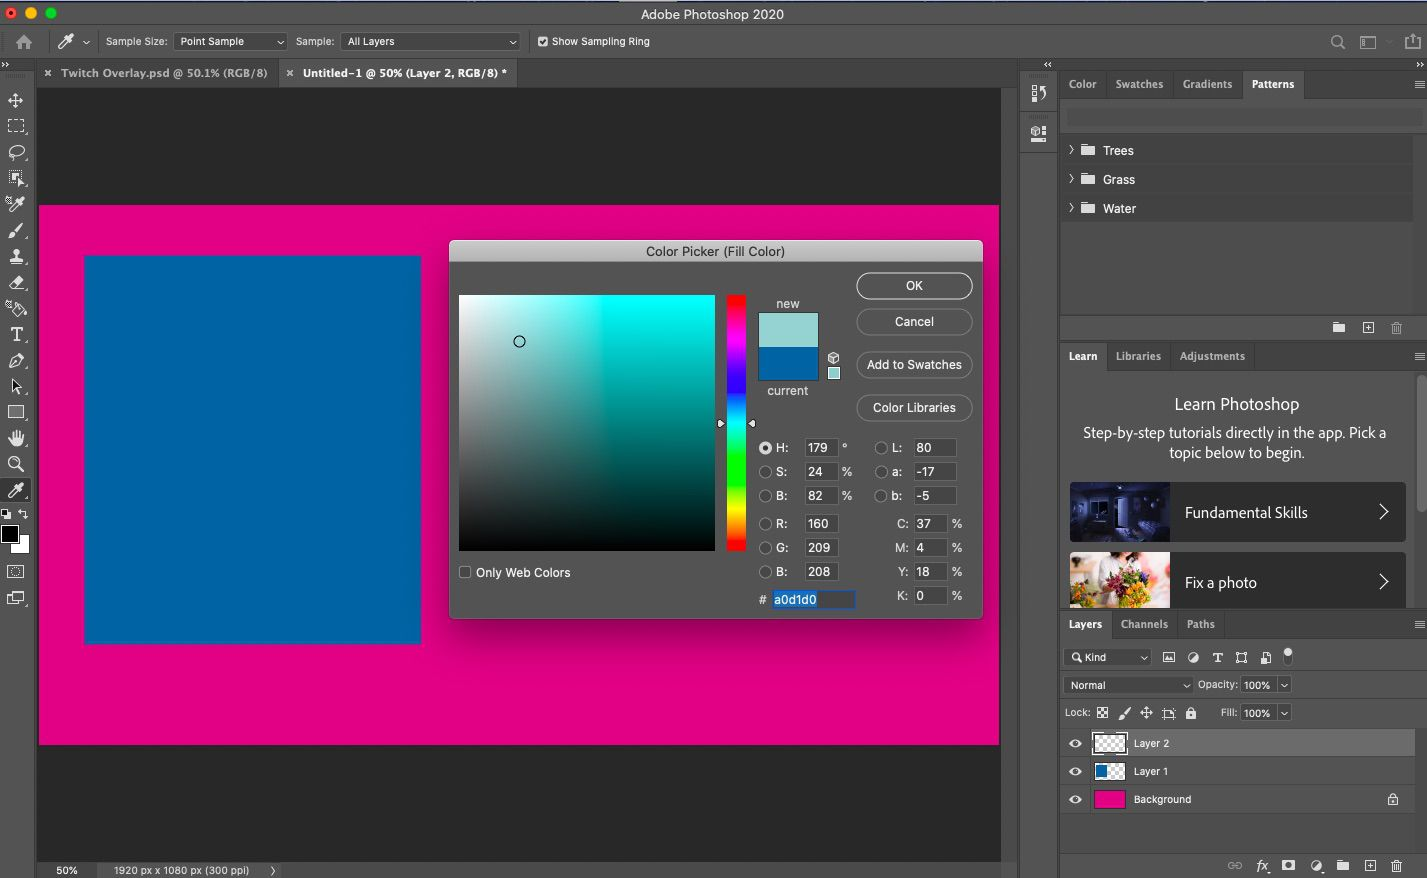 Create a new layer and add new fill color